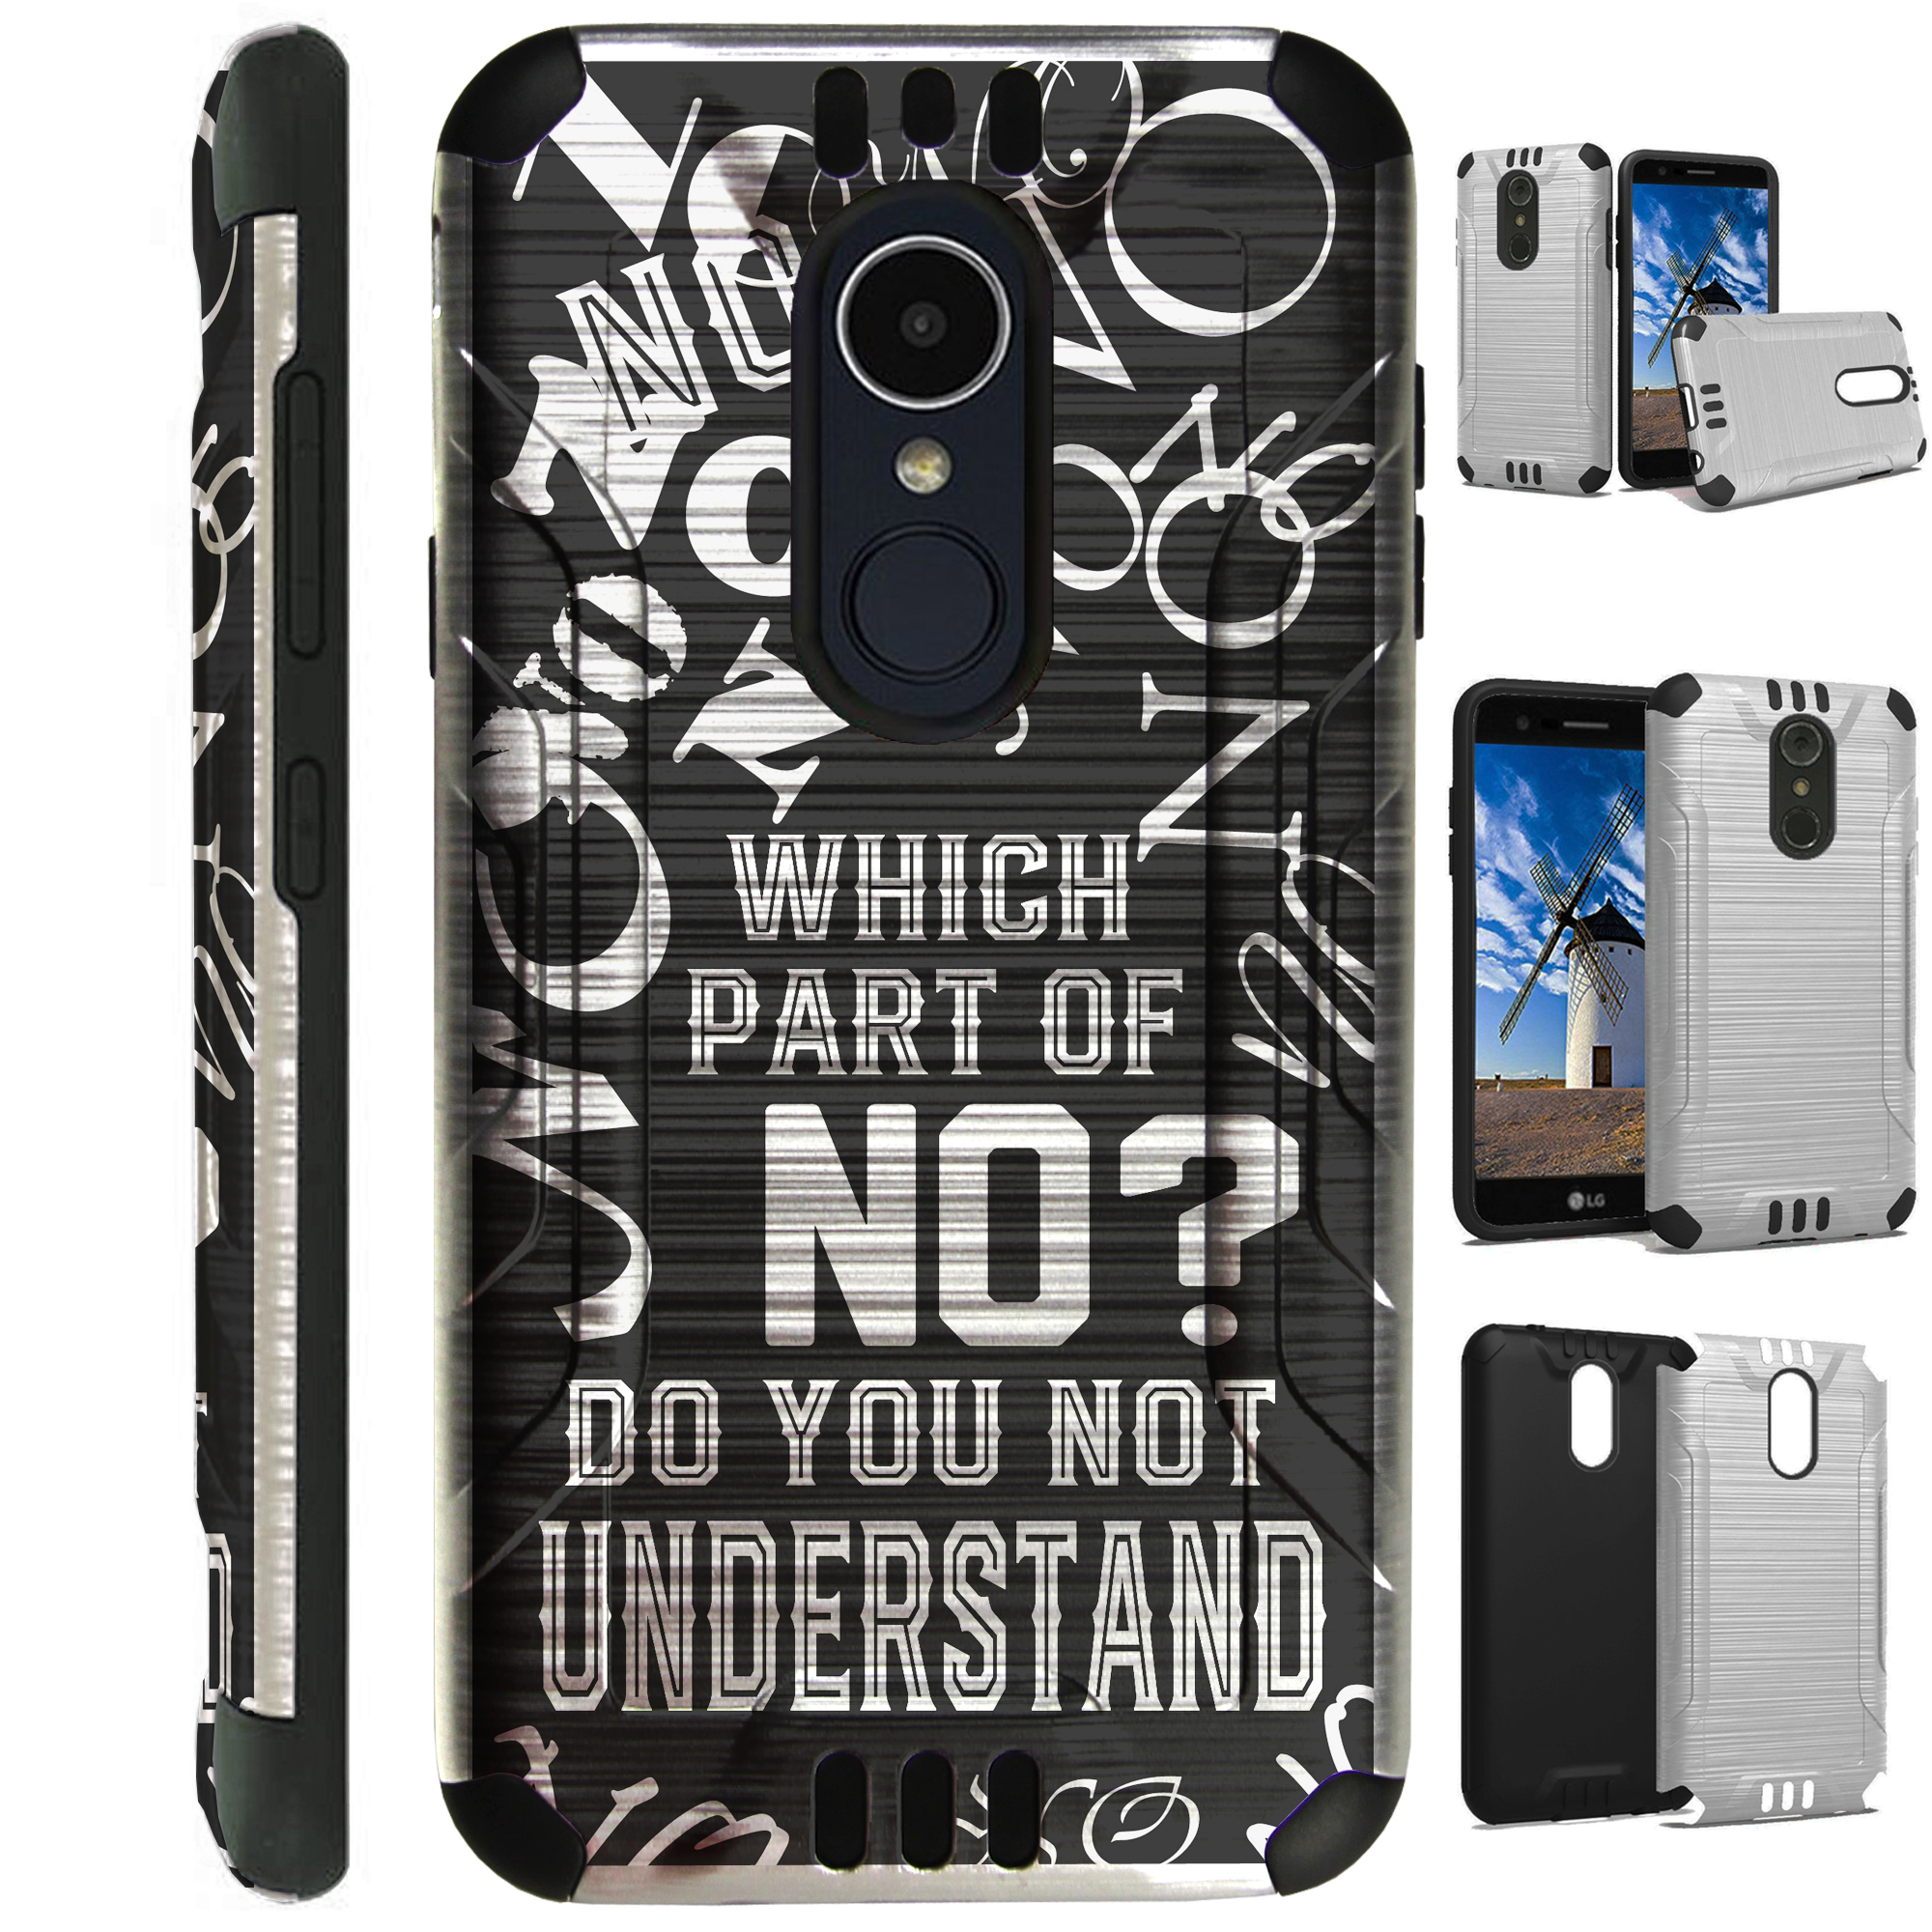 For LG Stylo 3 | LG Stylo 3 Plus Case Brushed Metal Texture Hybrid TPU Silver Guard Phone Cover (Do You Not Understand)